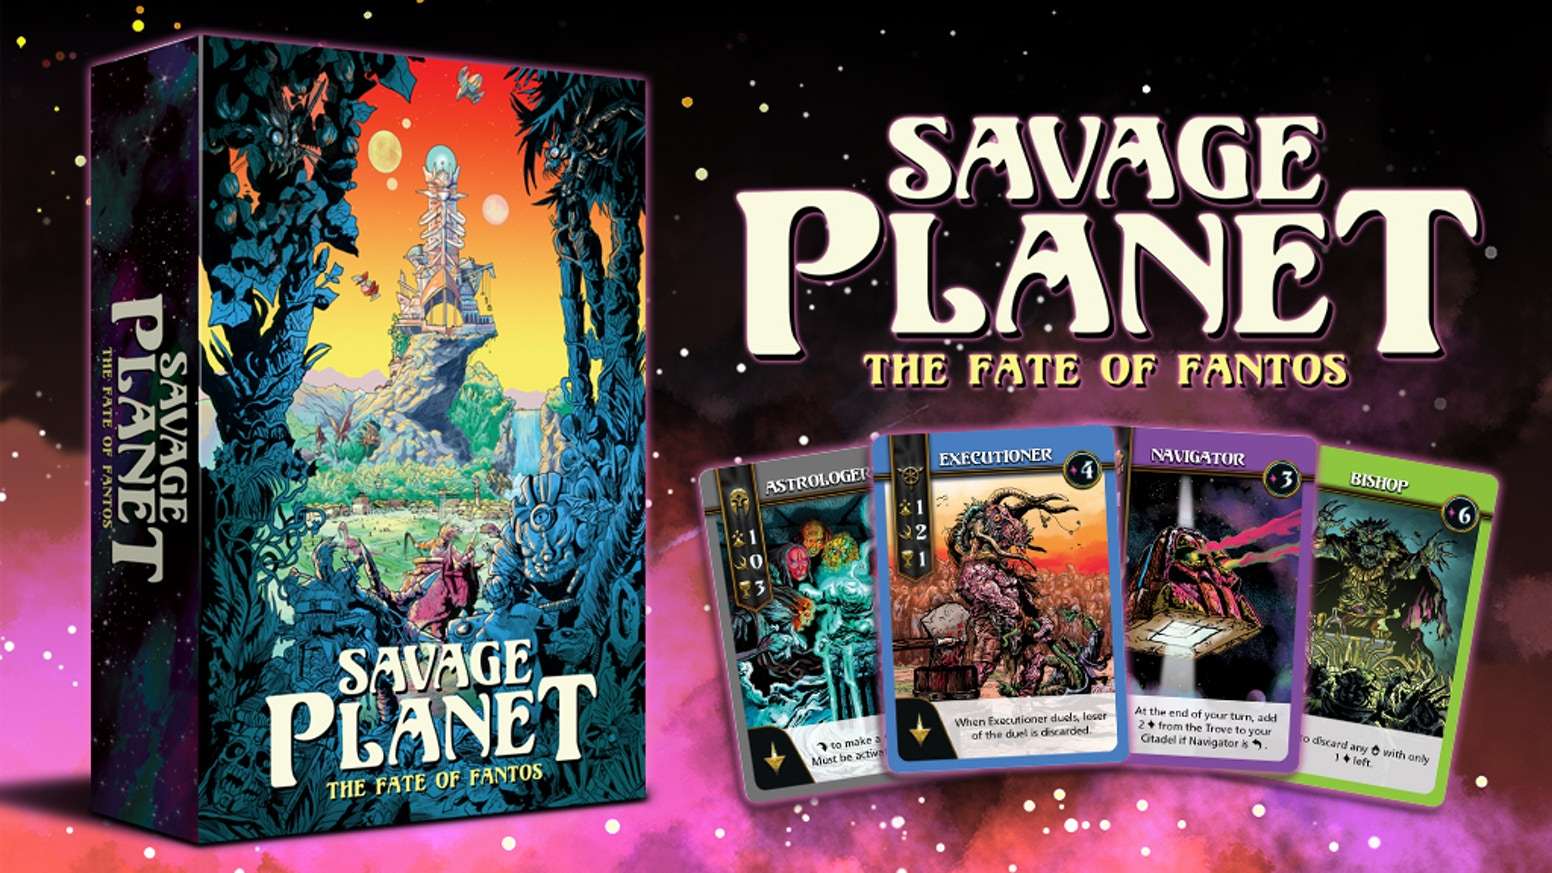 Fight for the Fate of Fantos in this beautifully illustrated, dark fantasy card game inspired by comics and cartoons from the '80s!